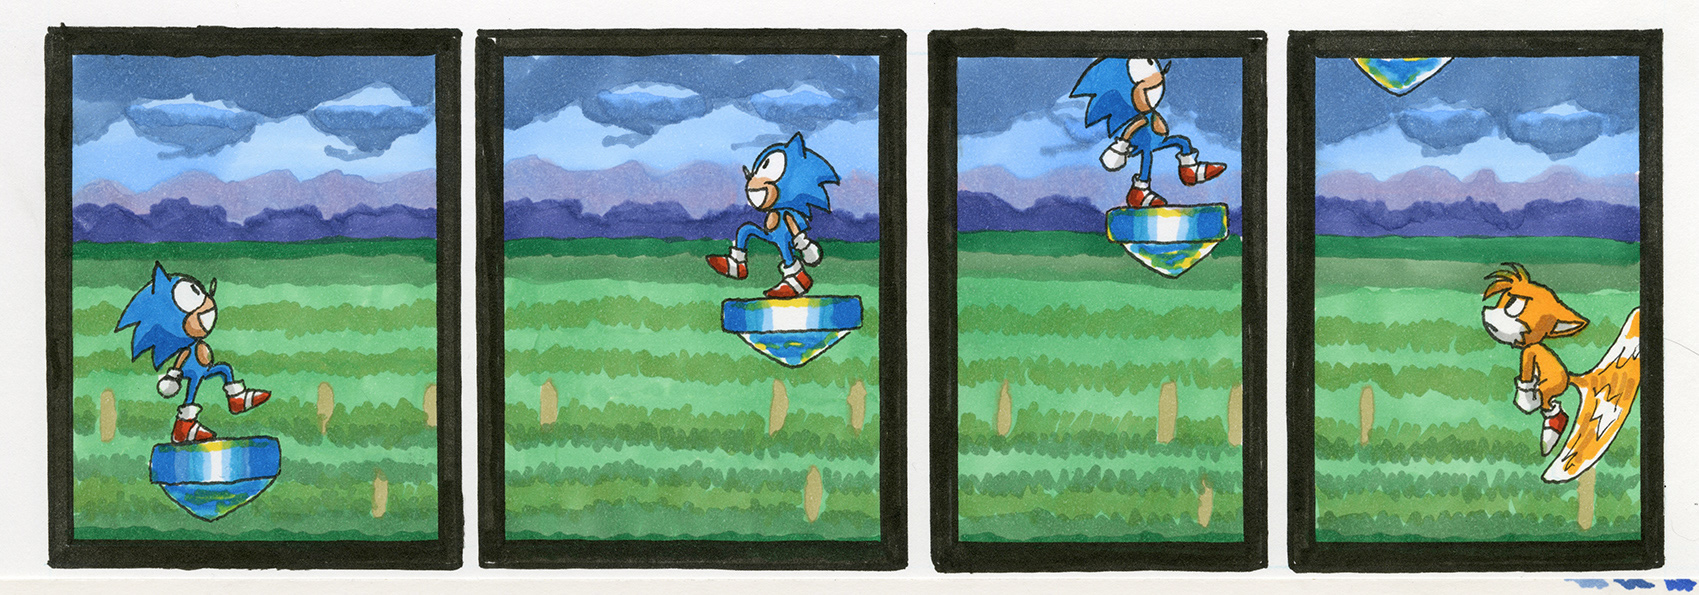 Sonic the Hedgehog 3: Marble Garden Zone, Act 2